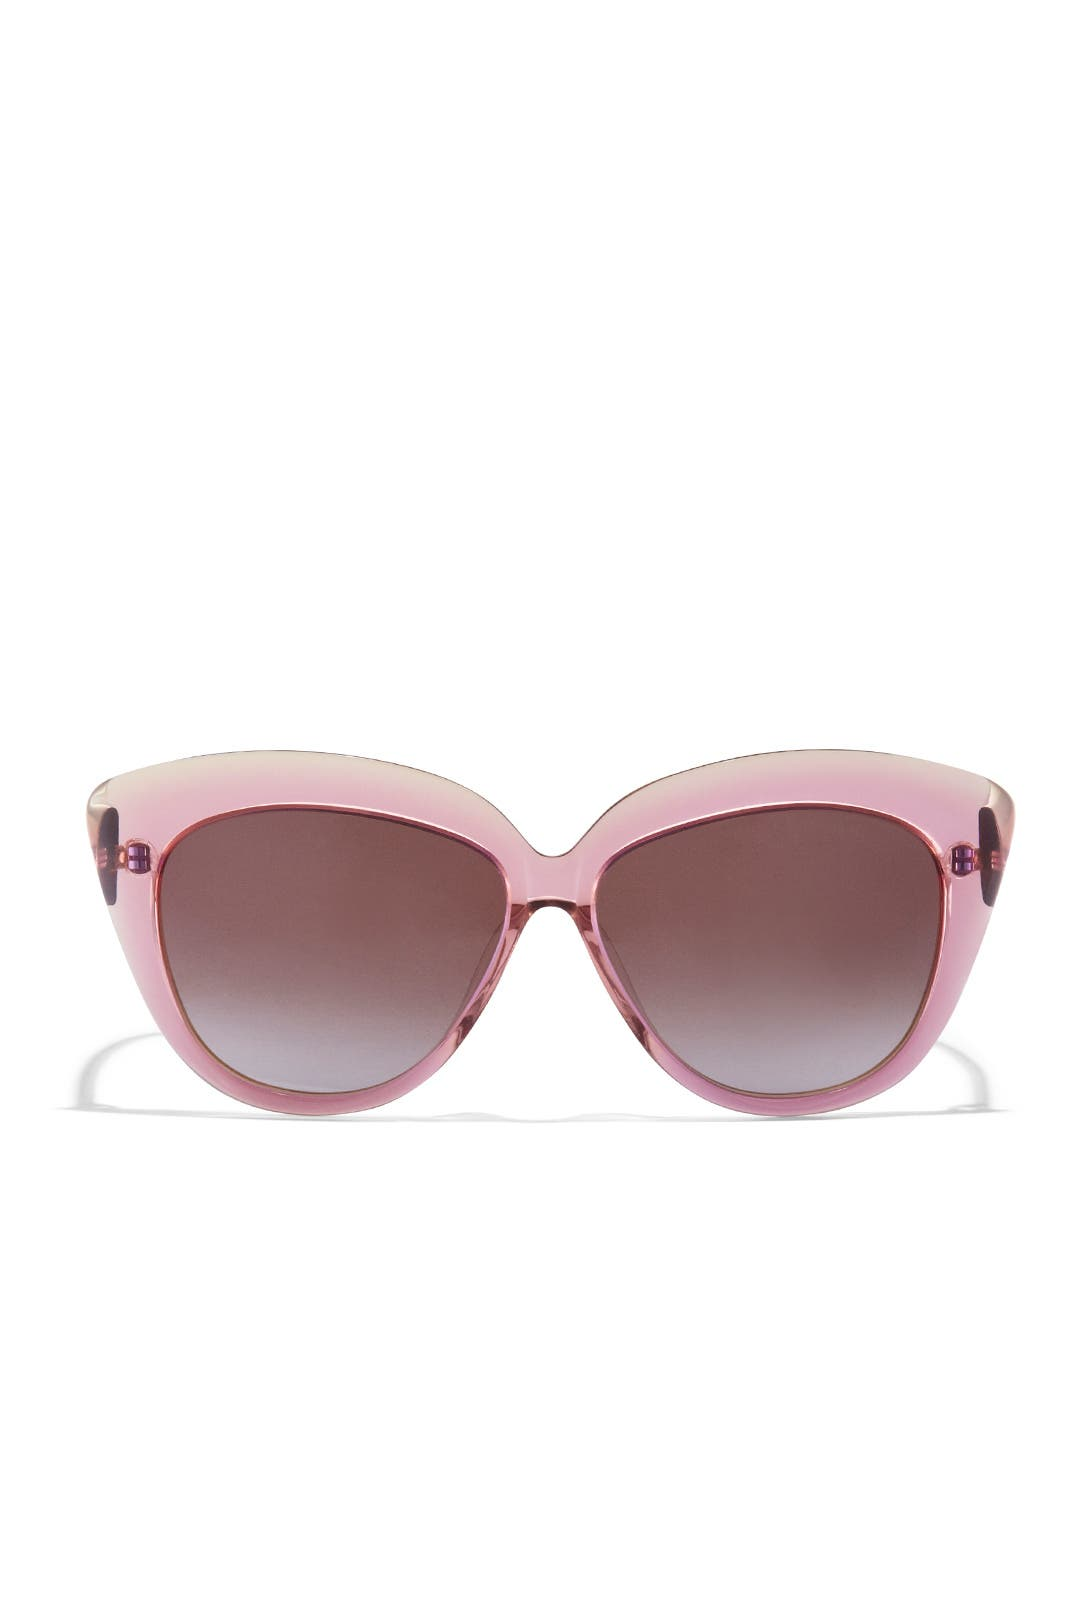 Essex Sunglasses by Elizabeth and James Accessories